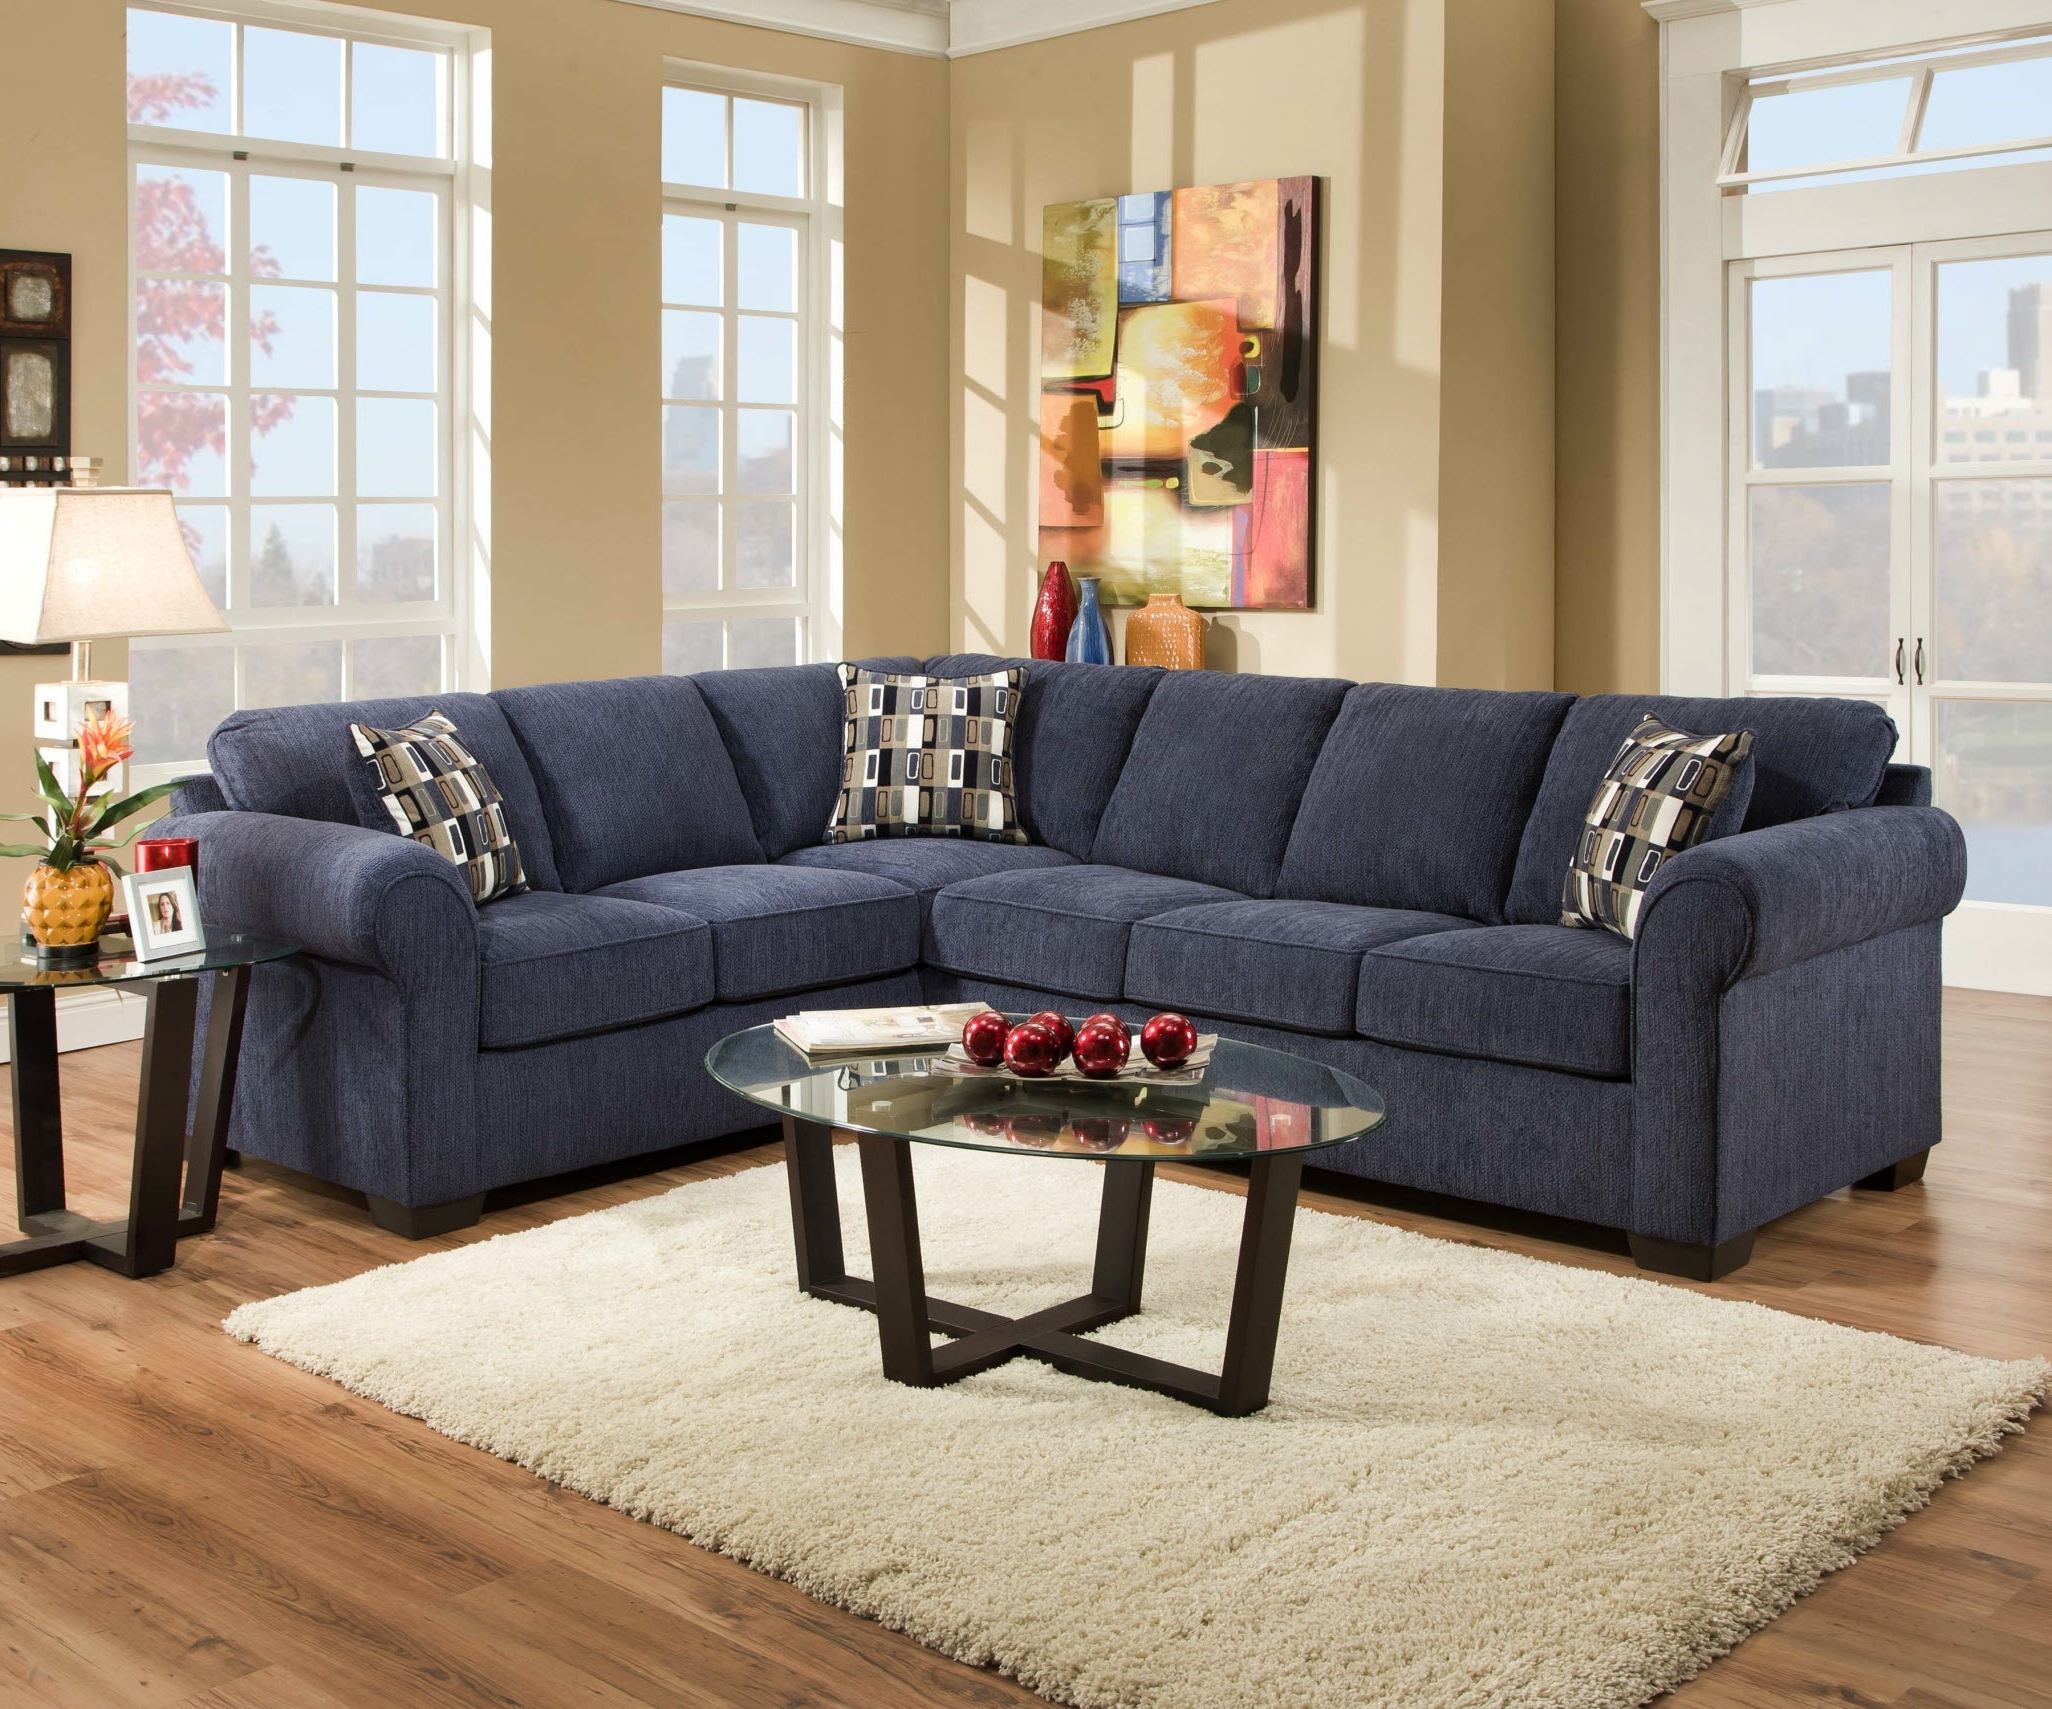 Best And Newest Ottawa Sectional Sofas In Living Room Sofa Beautiful Blue Microfiber Sectional In Sofas (View 1 of 15)